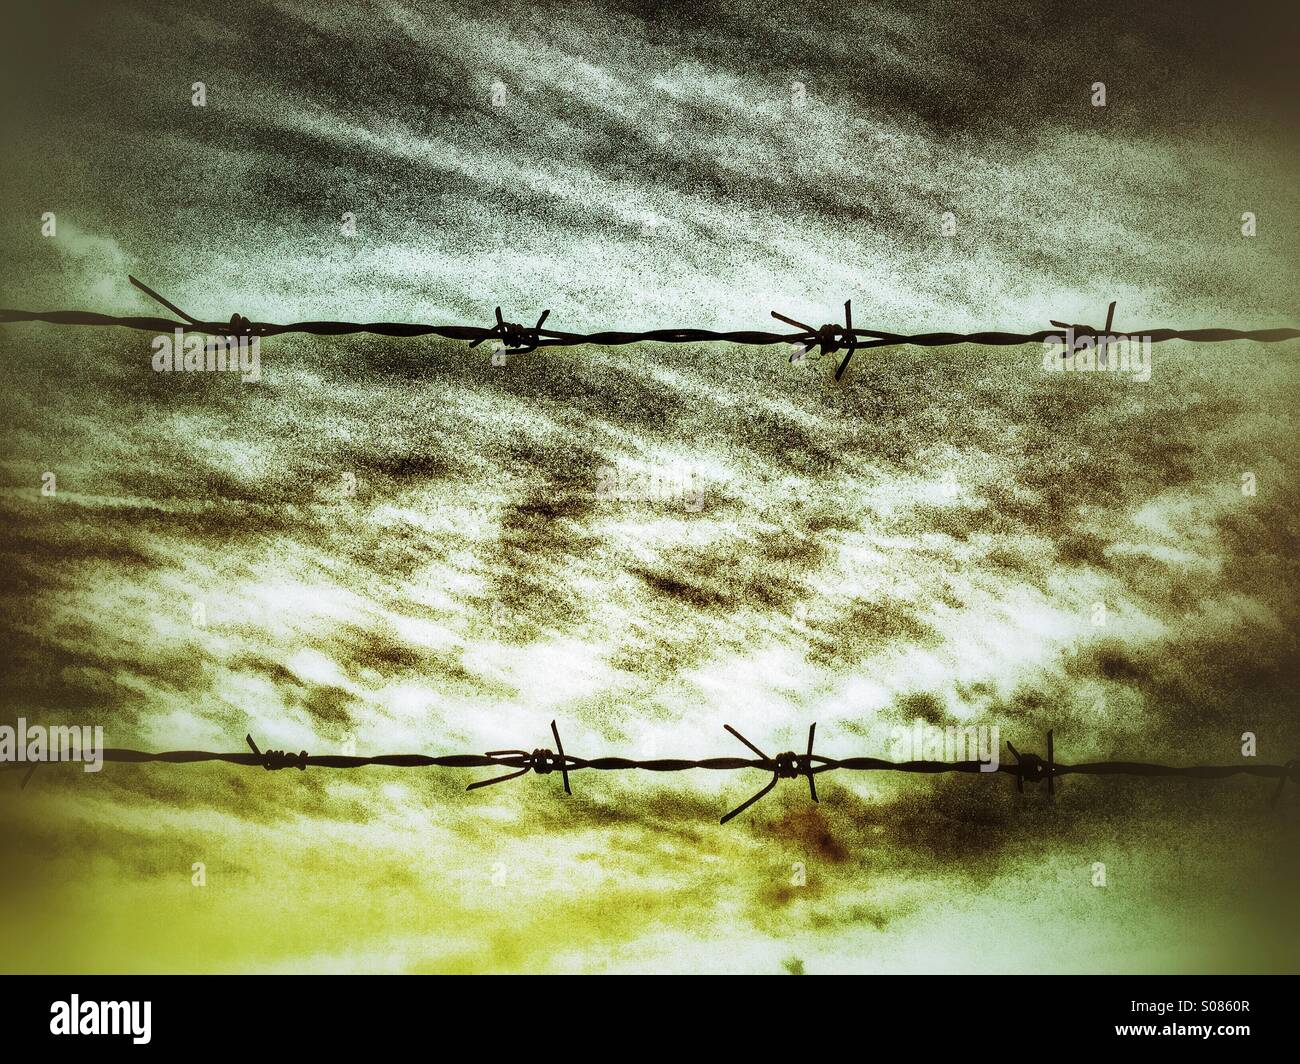 Silhouettes of barbed wires - Stock Image